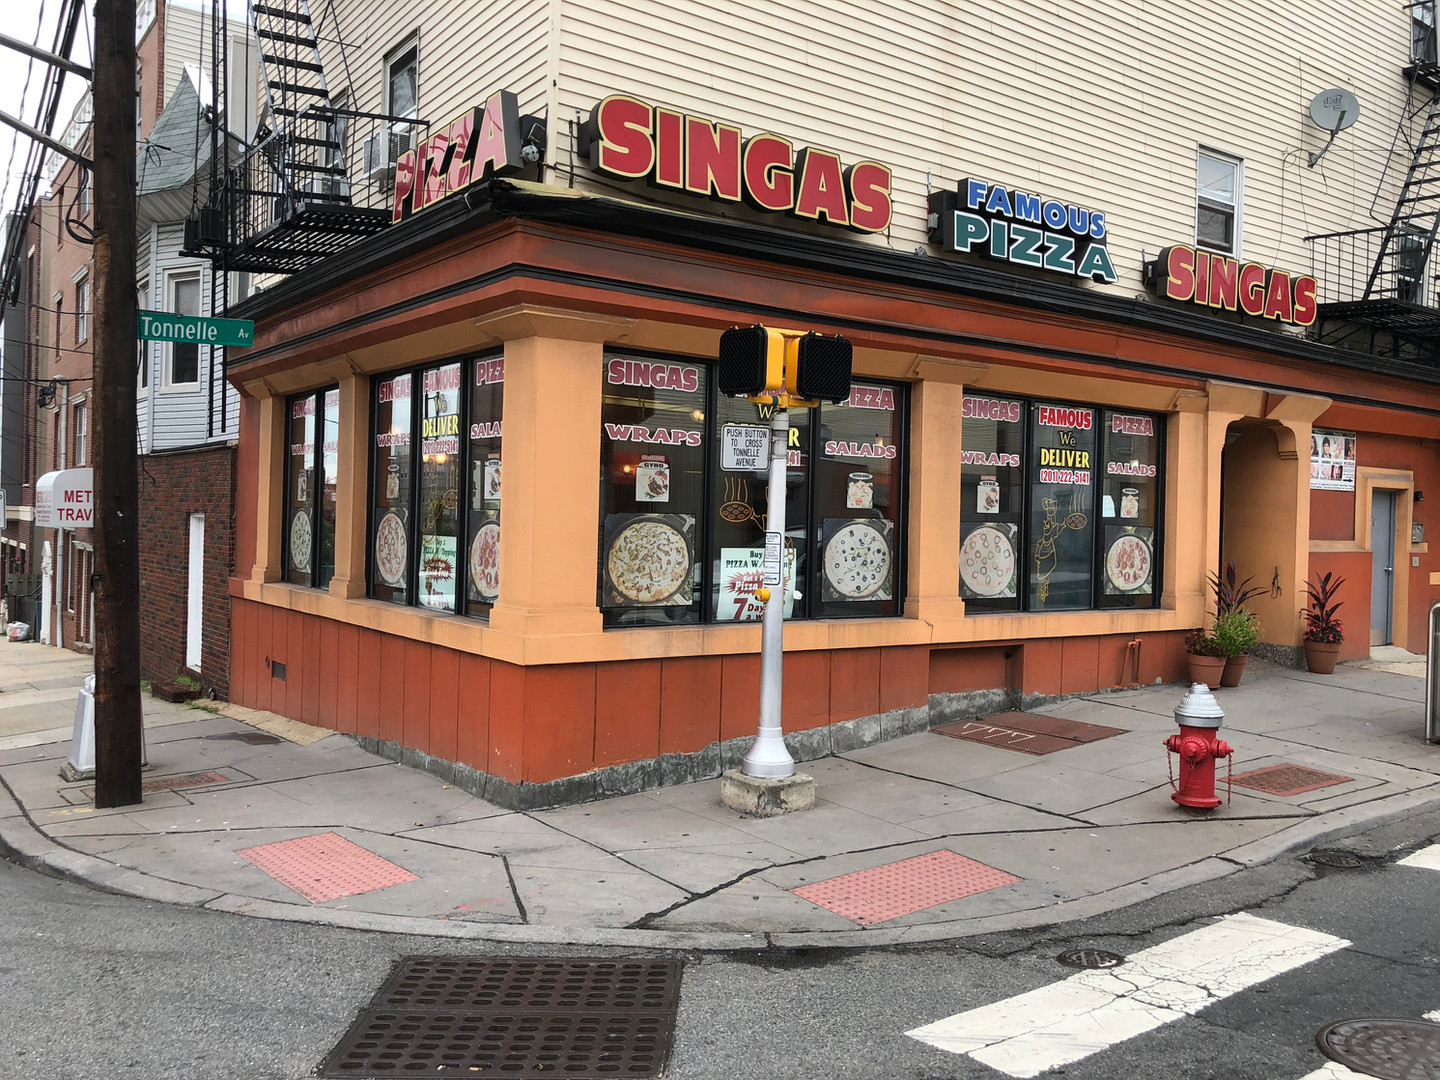 Singas Famous Pizza NJ Jersey City